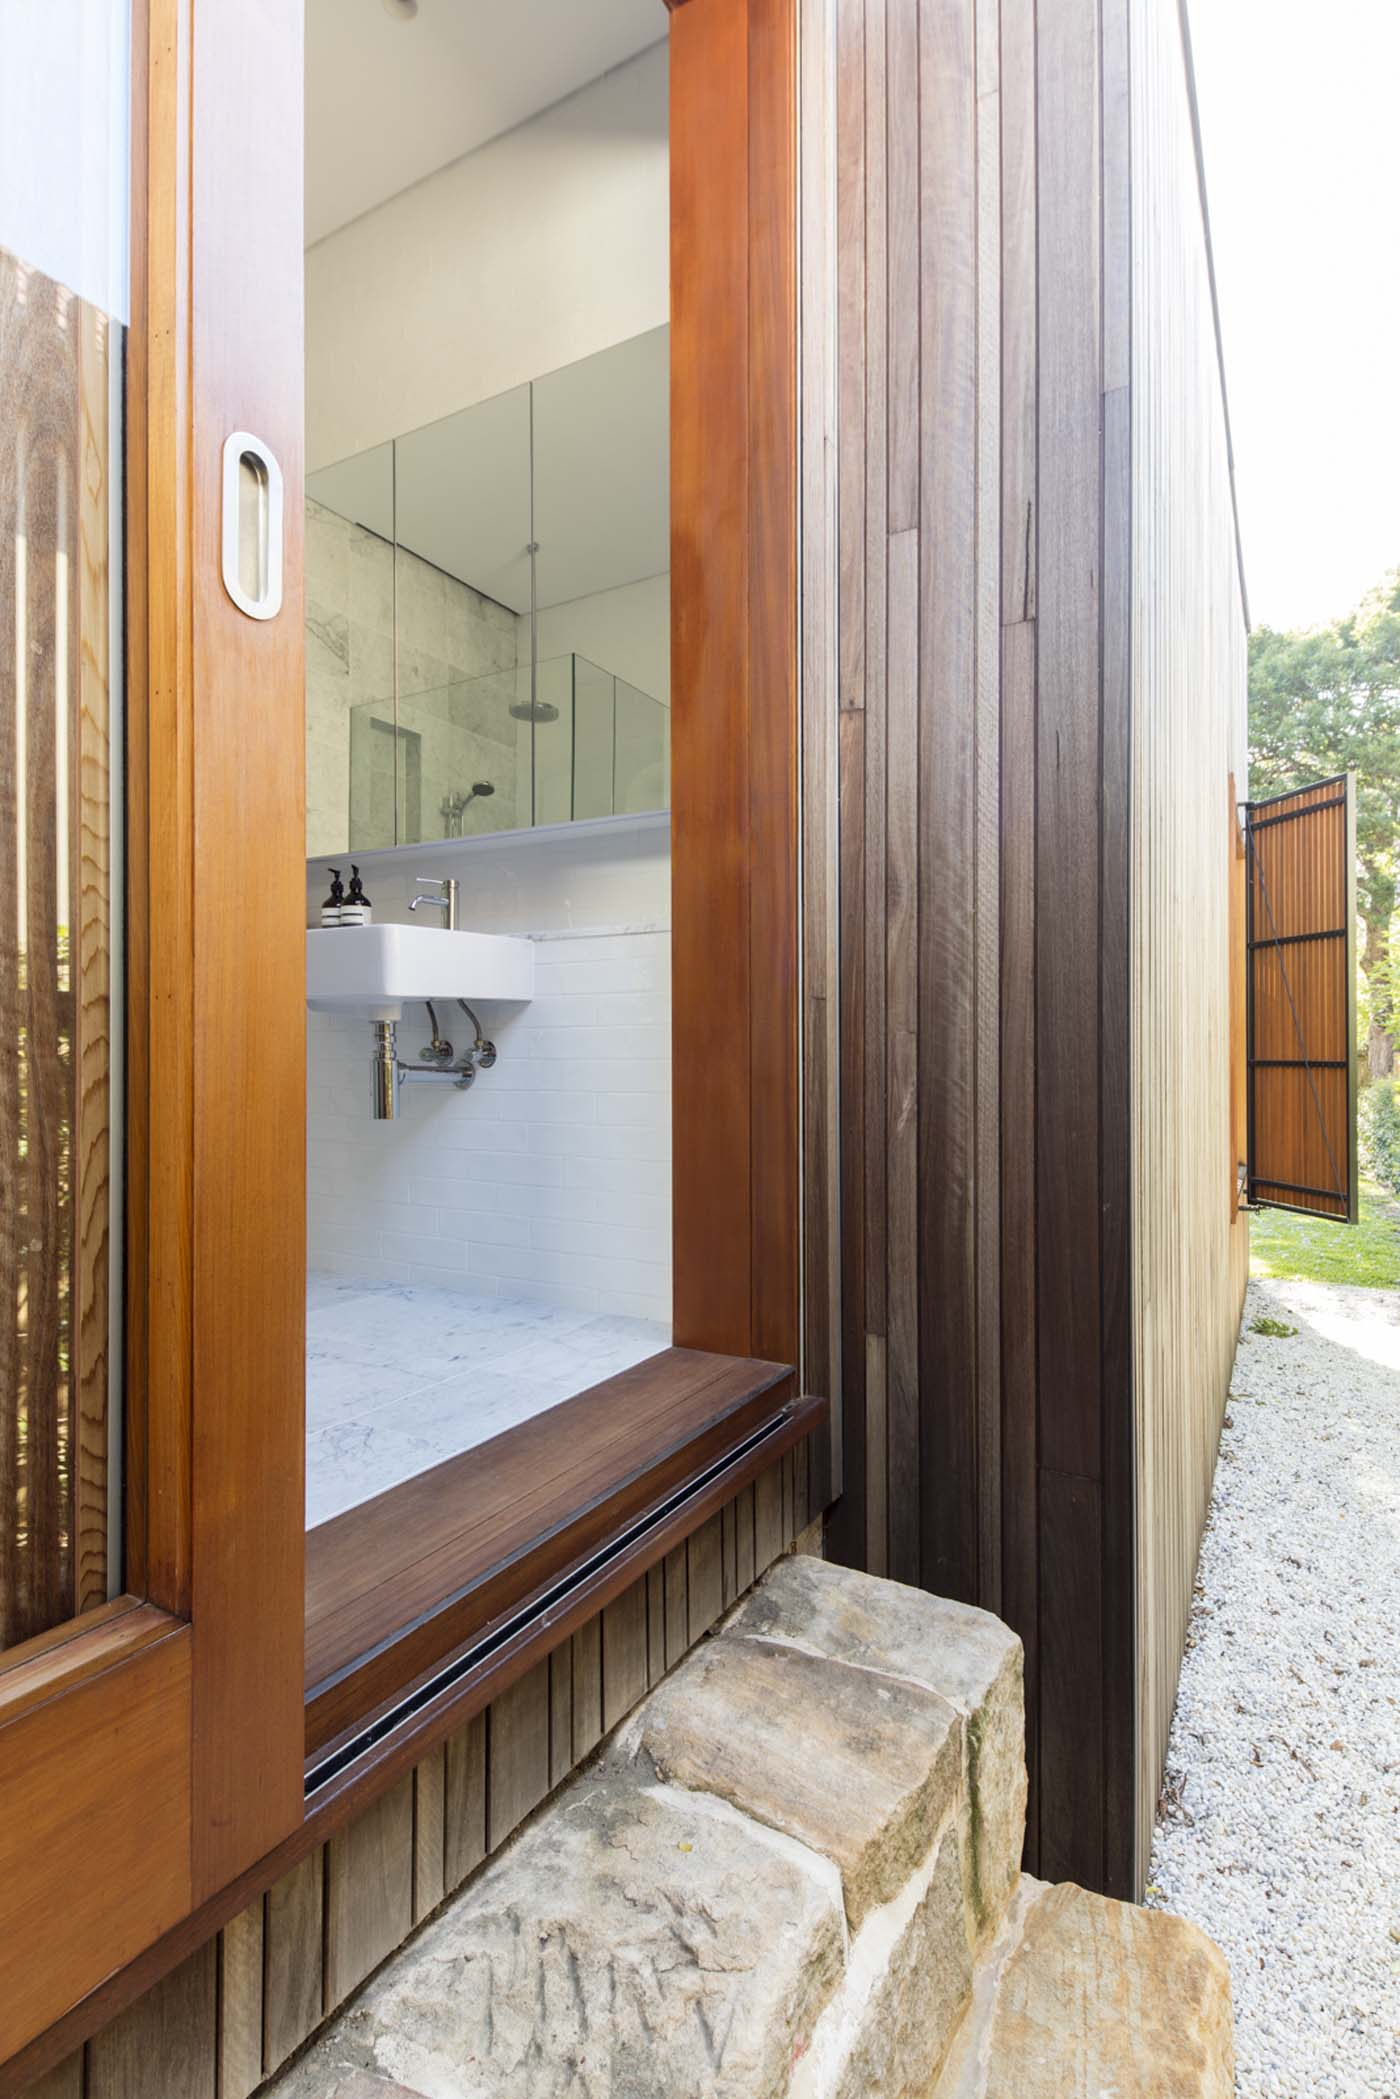 Sung Dobson house by Sam Crawford Architects, Sydney. Bathroom and sandstone step leads outdoors.